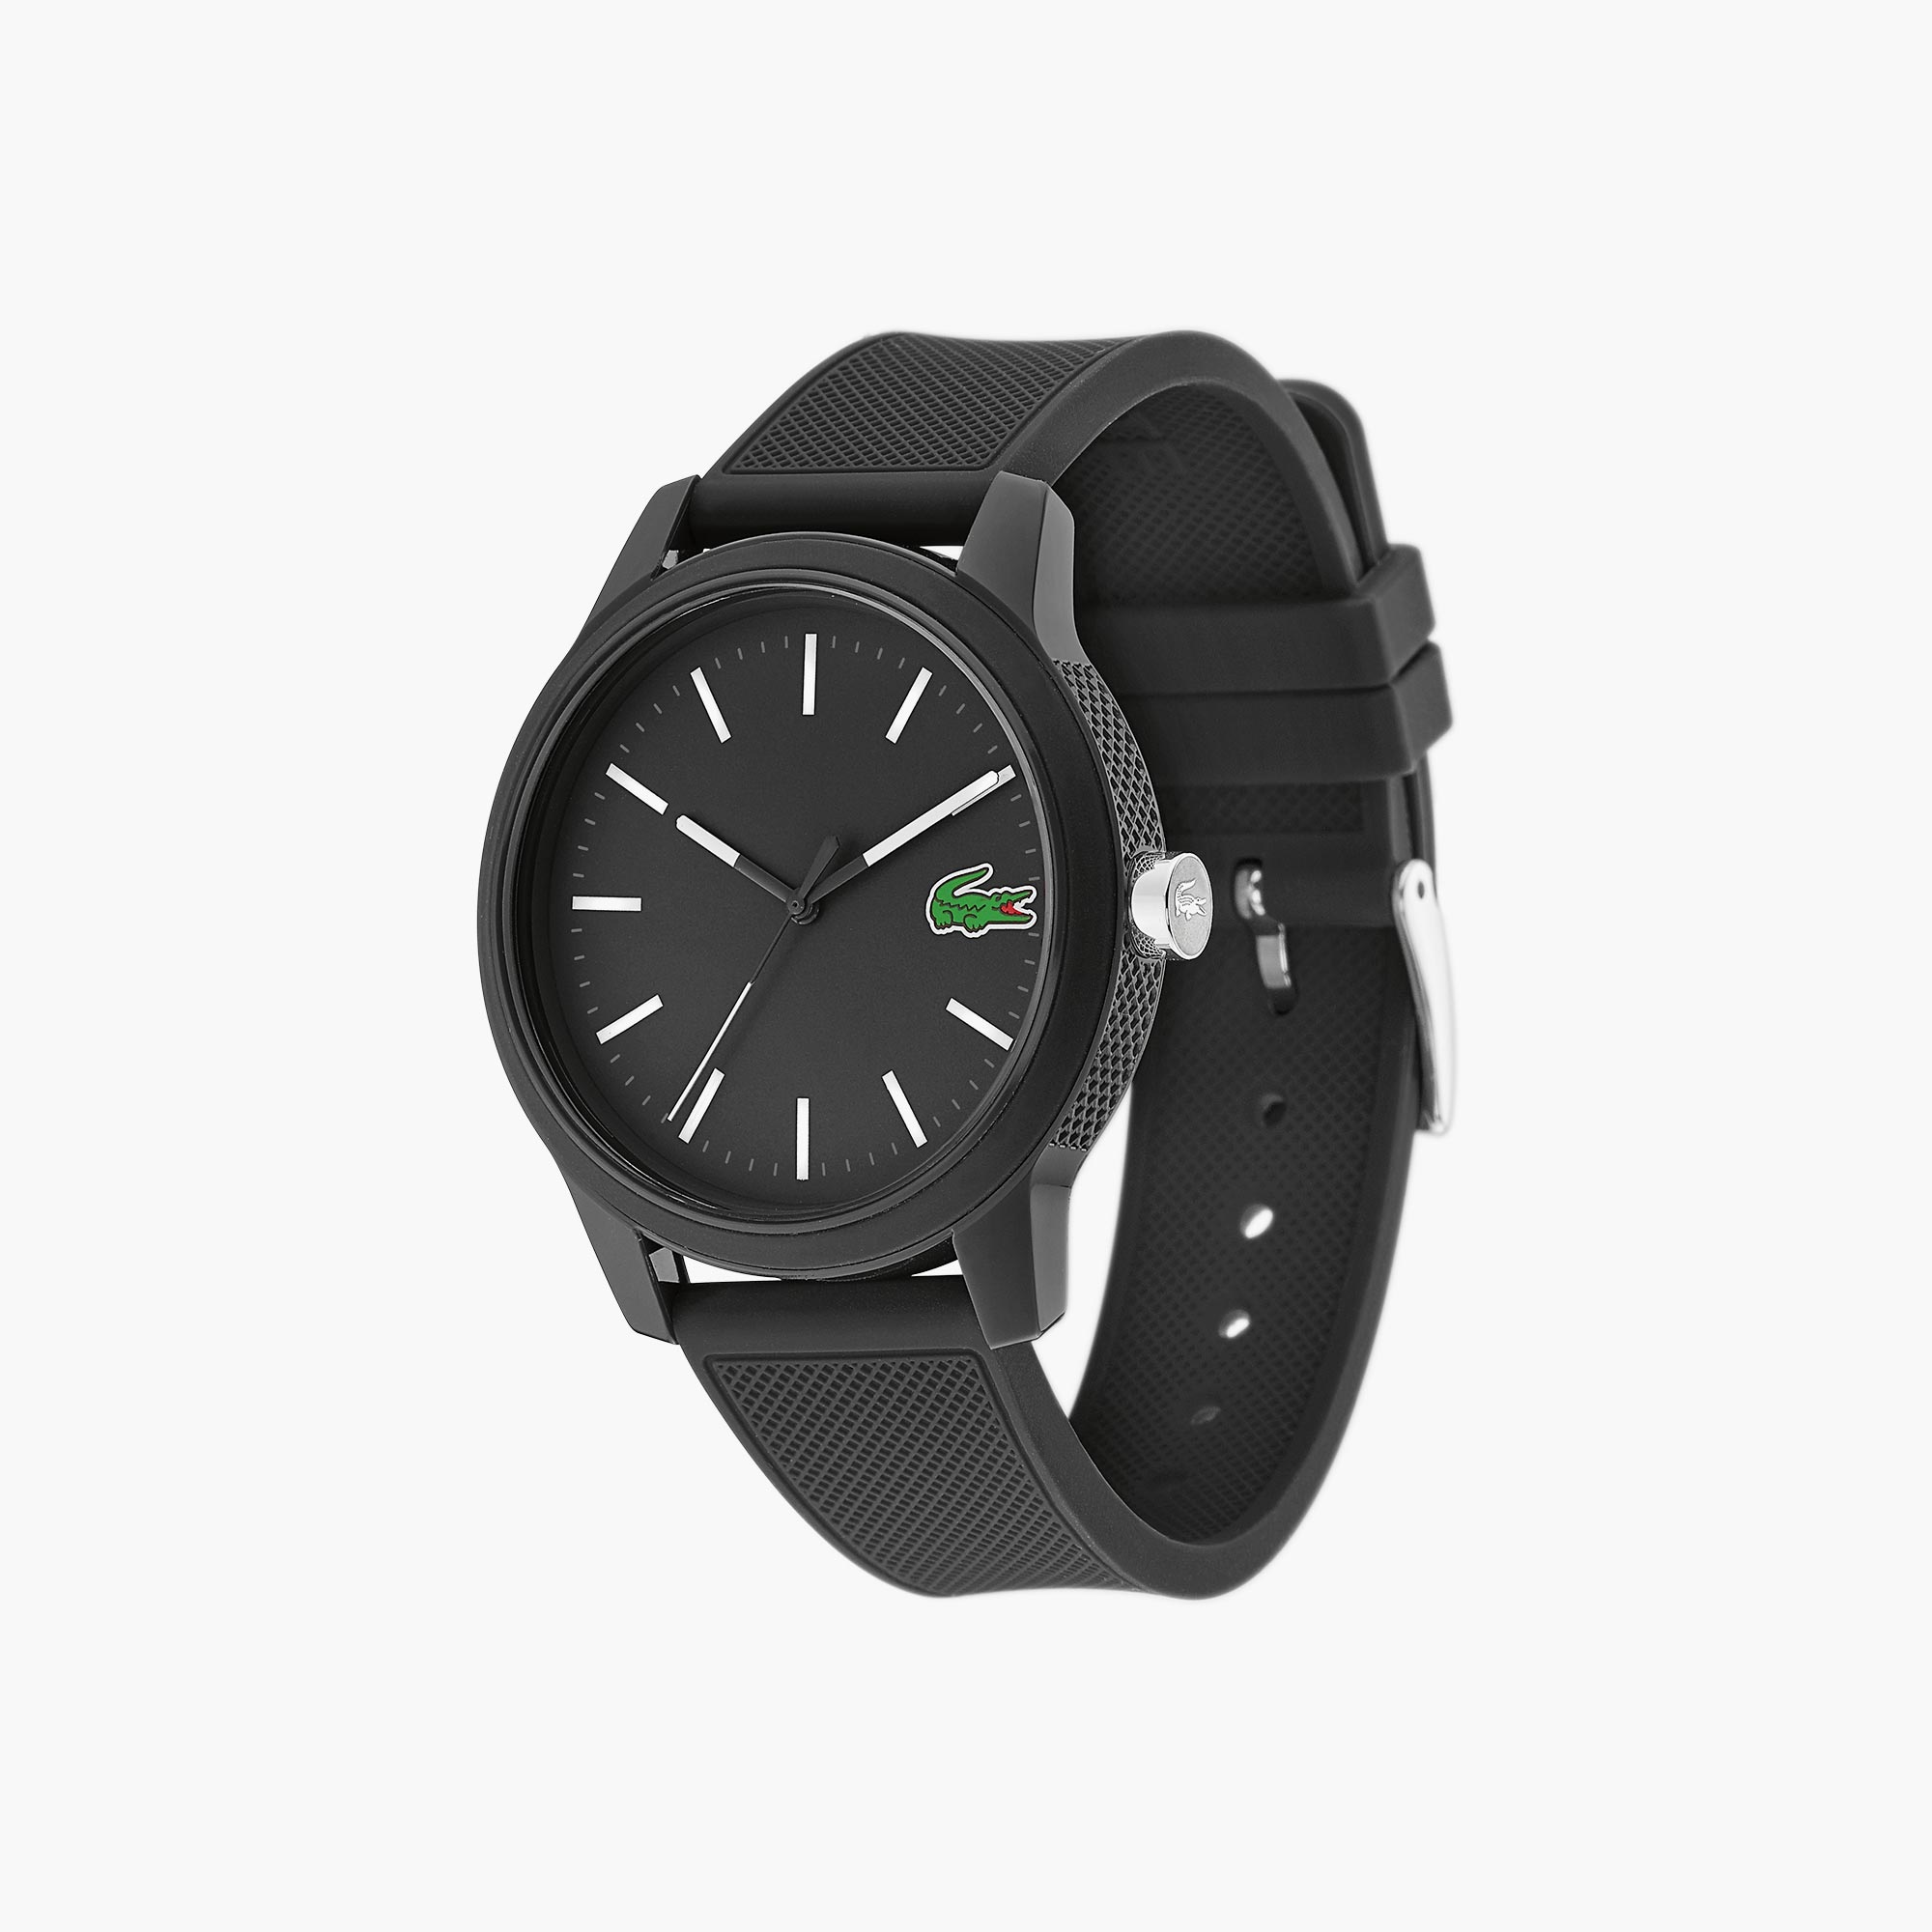 Men S Lacoste 12 12 Watch With Black Silicone Strap Lacoste